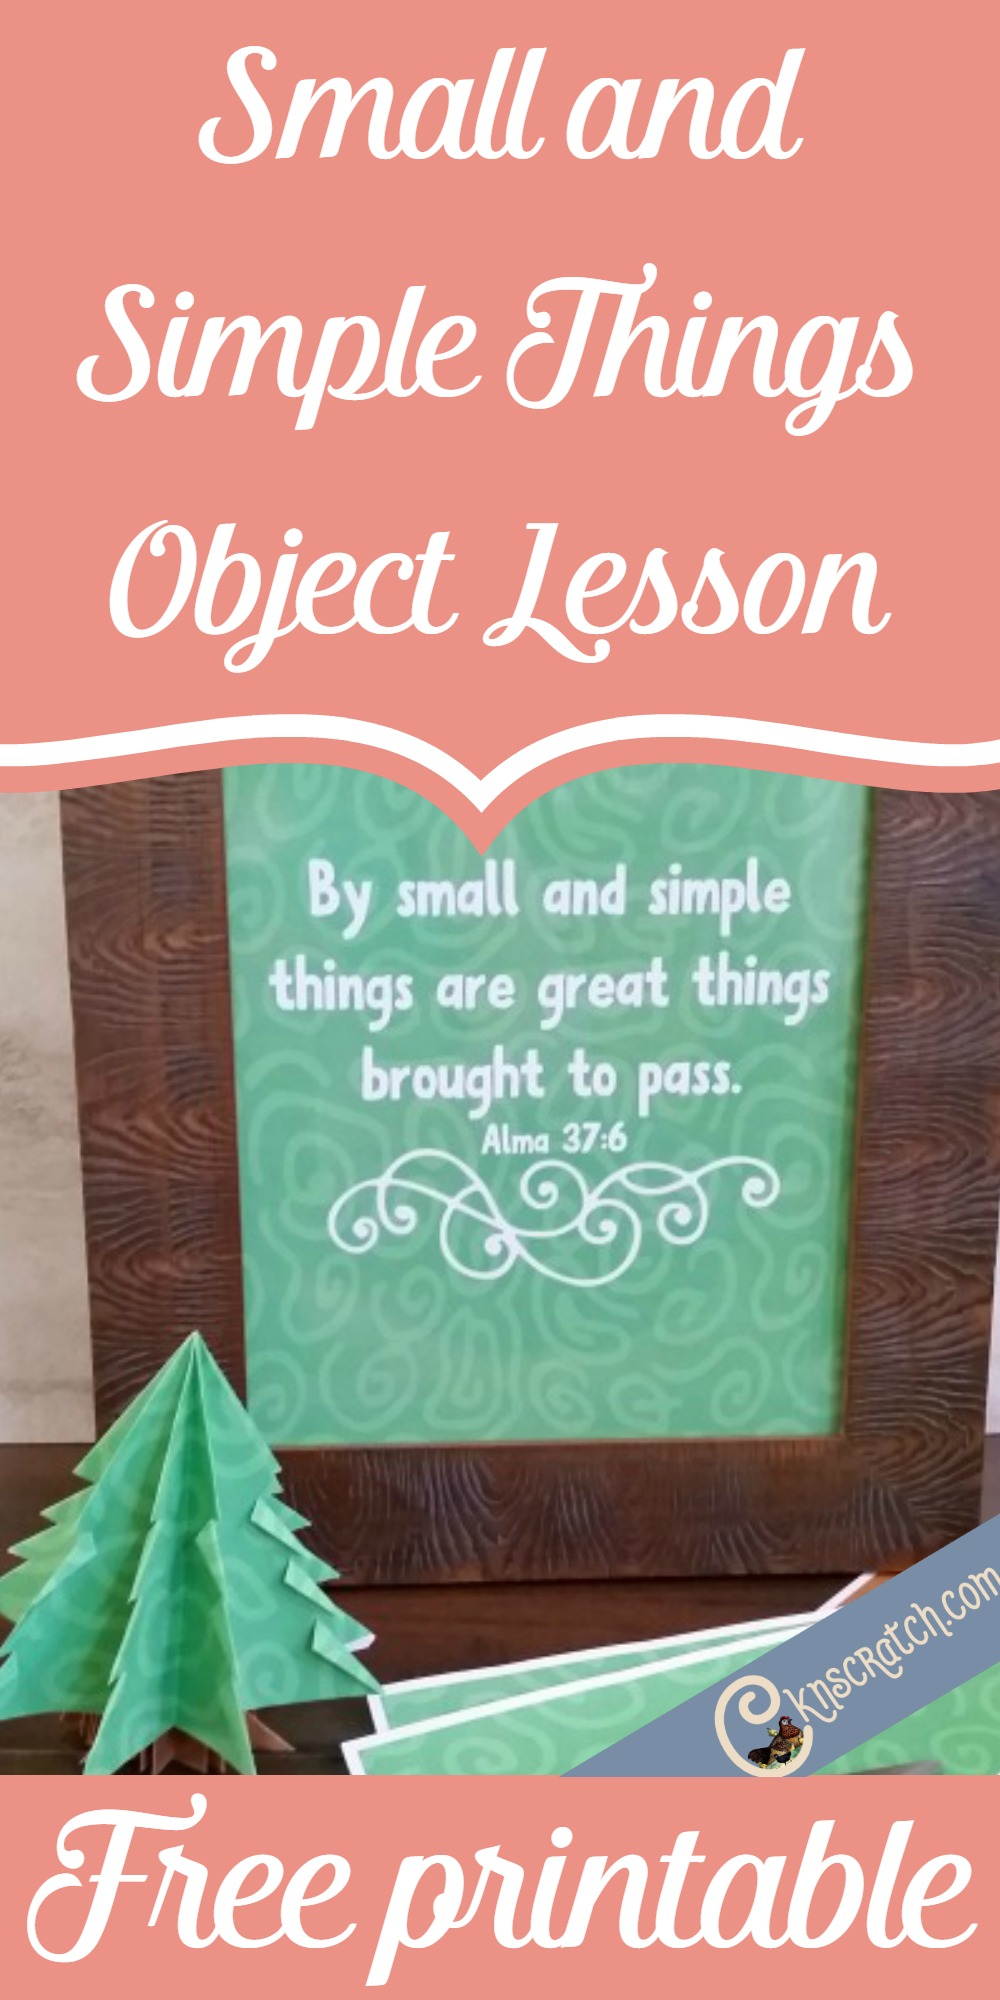 Great object lesson for teaching this scripture about small and simple things. Would be perfect for FHE or YW